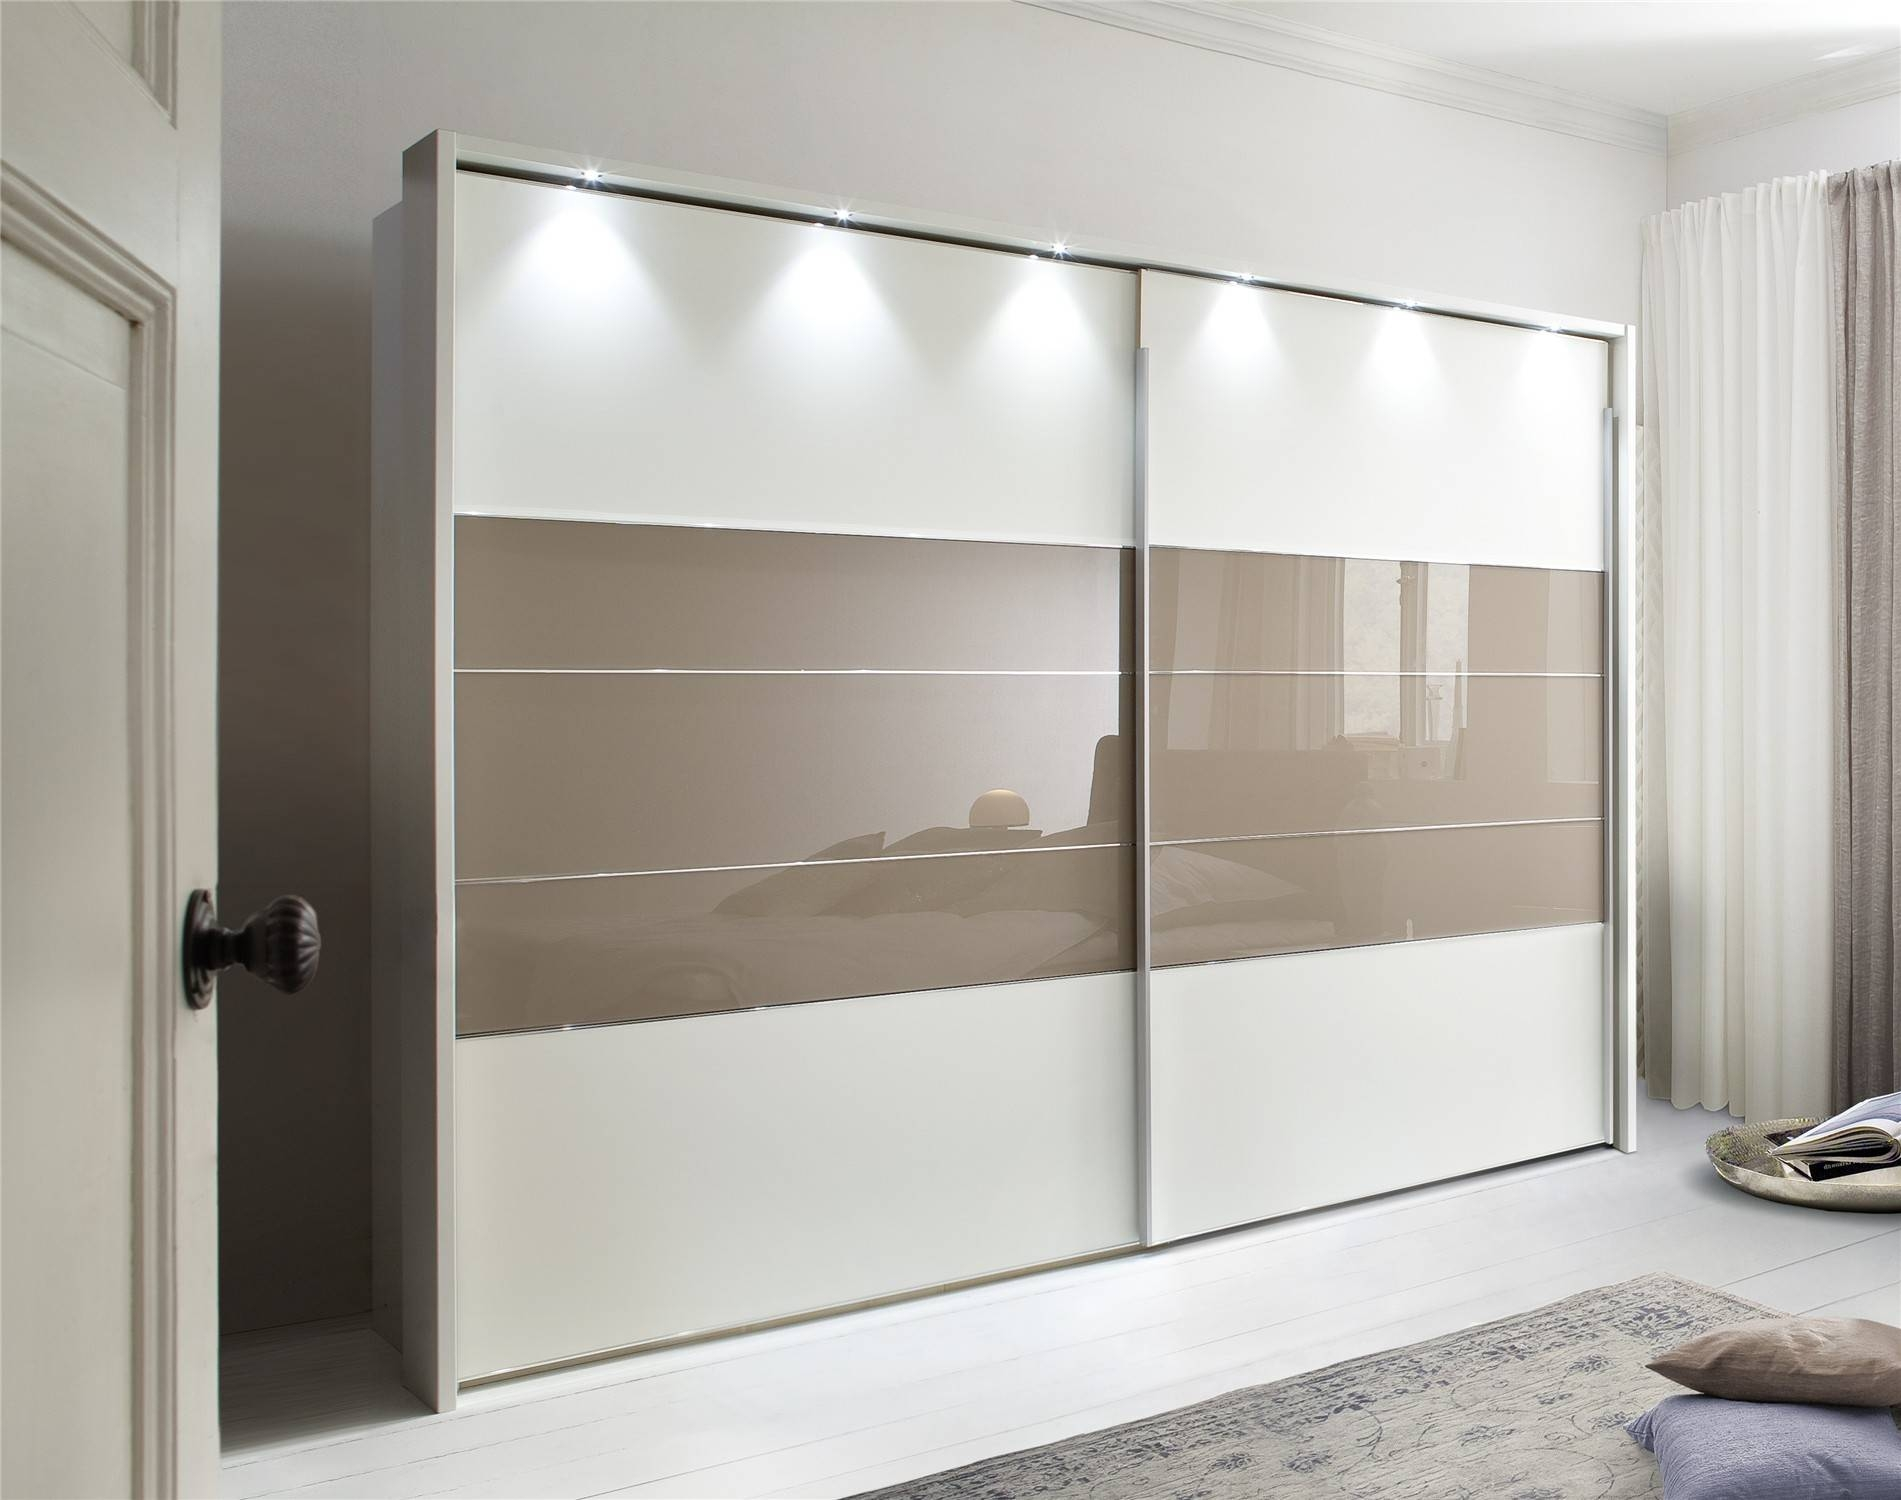 Cheap Wardrobes With Sliding Doors | Hallway Furniture Ideas with Cheap Double Wardrobes (Image 5 of 15)